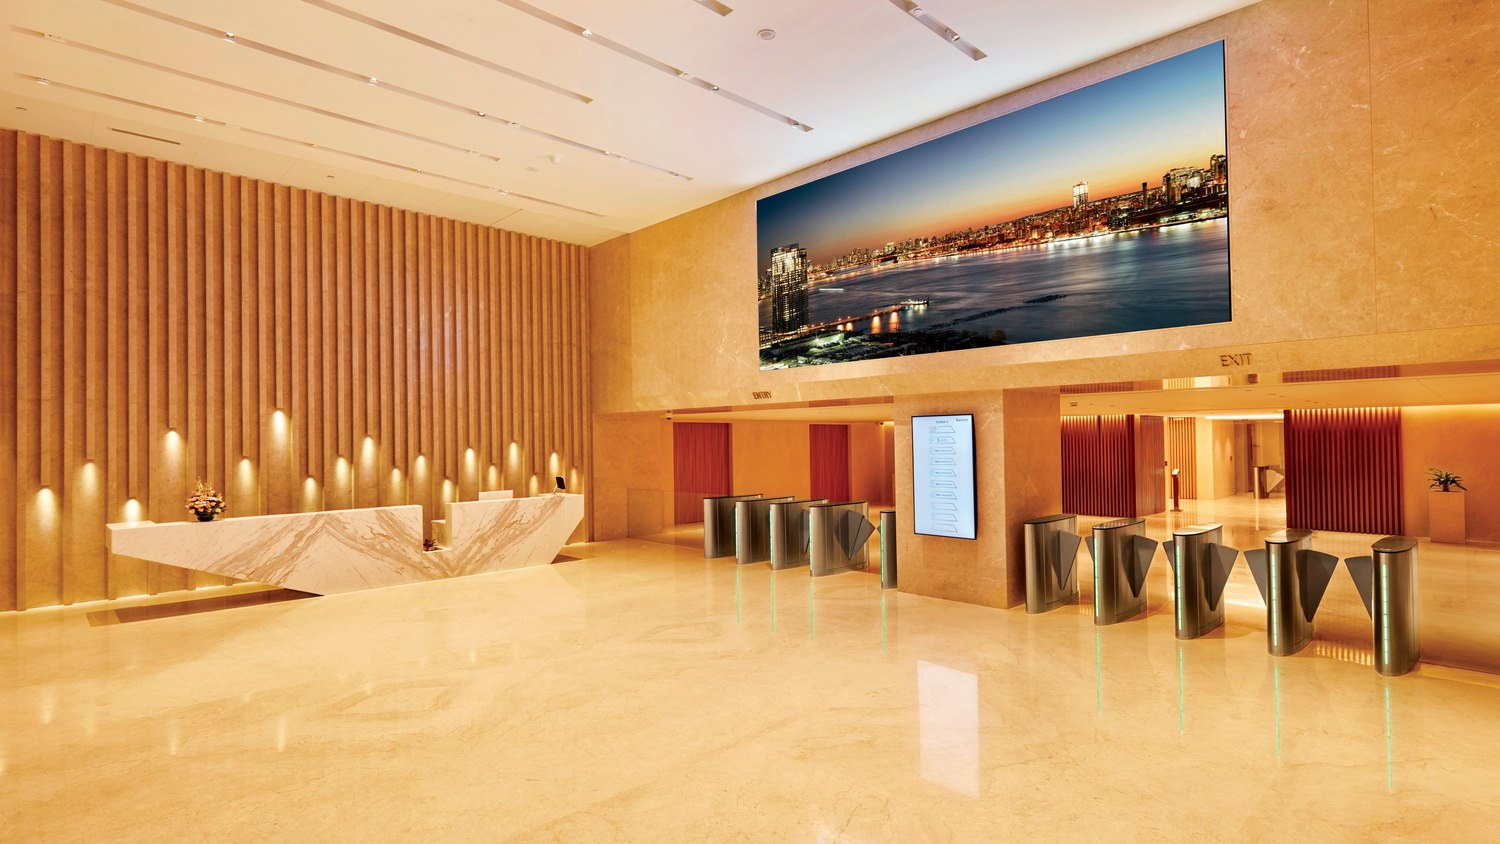 A large lobby with different counters and a large picture of a city skyline at night on the wall.